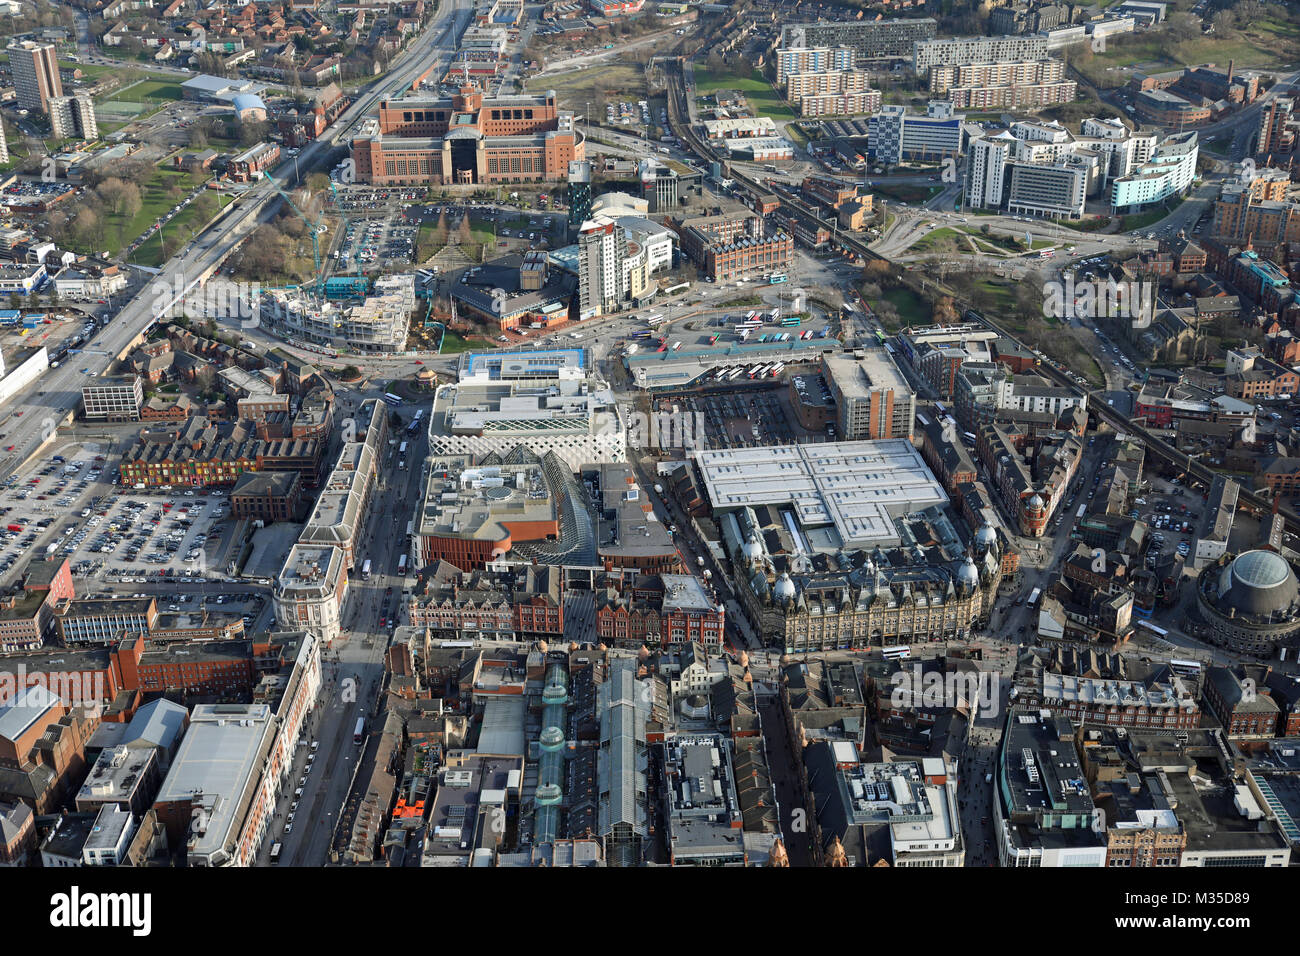 aerial view of Leeds city centre, UK - Stock Image